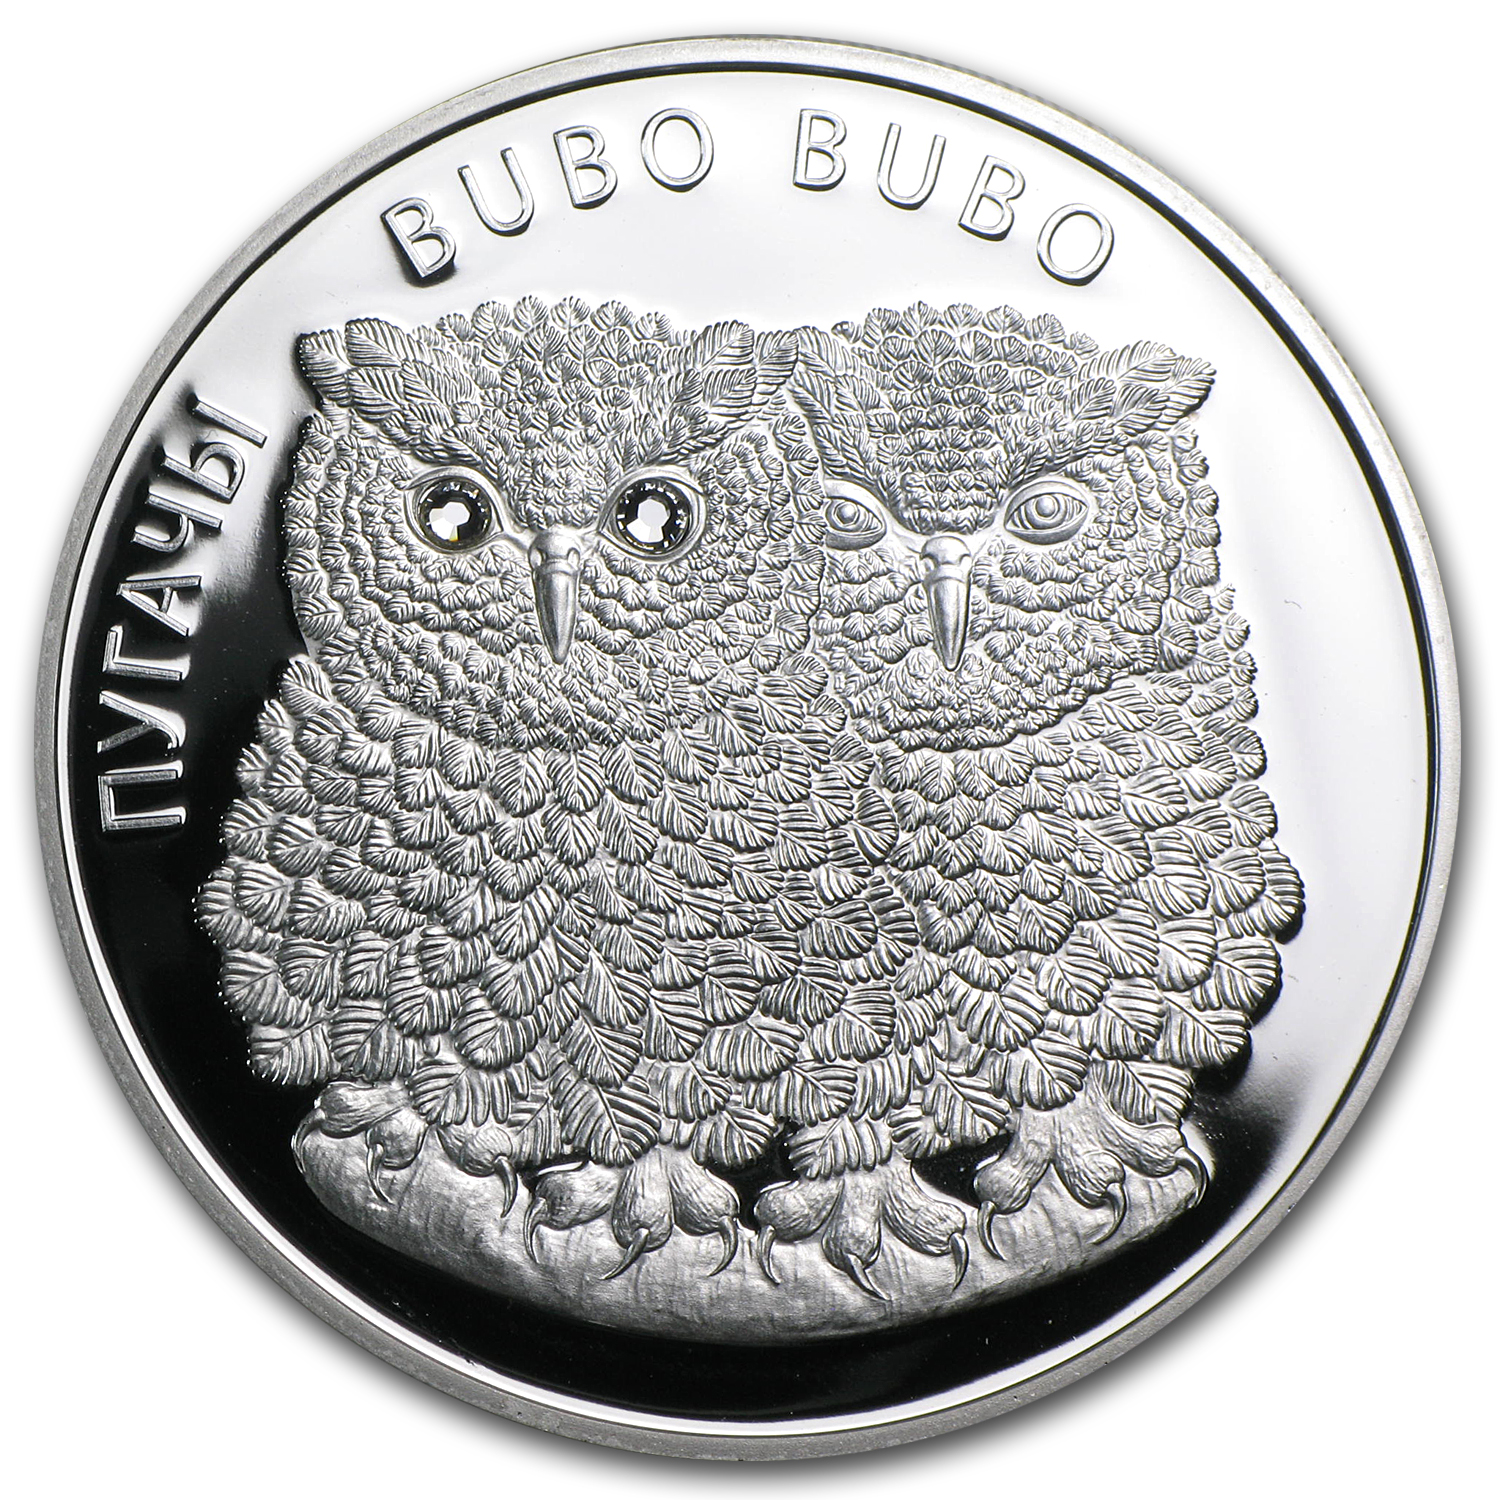 Belarus 2010 Proof Silver Eagle Owls - Bubo Bubo (No Coa)